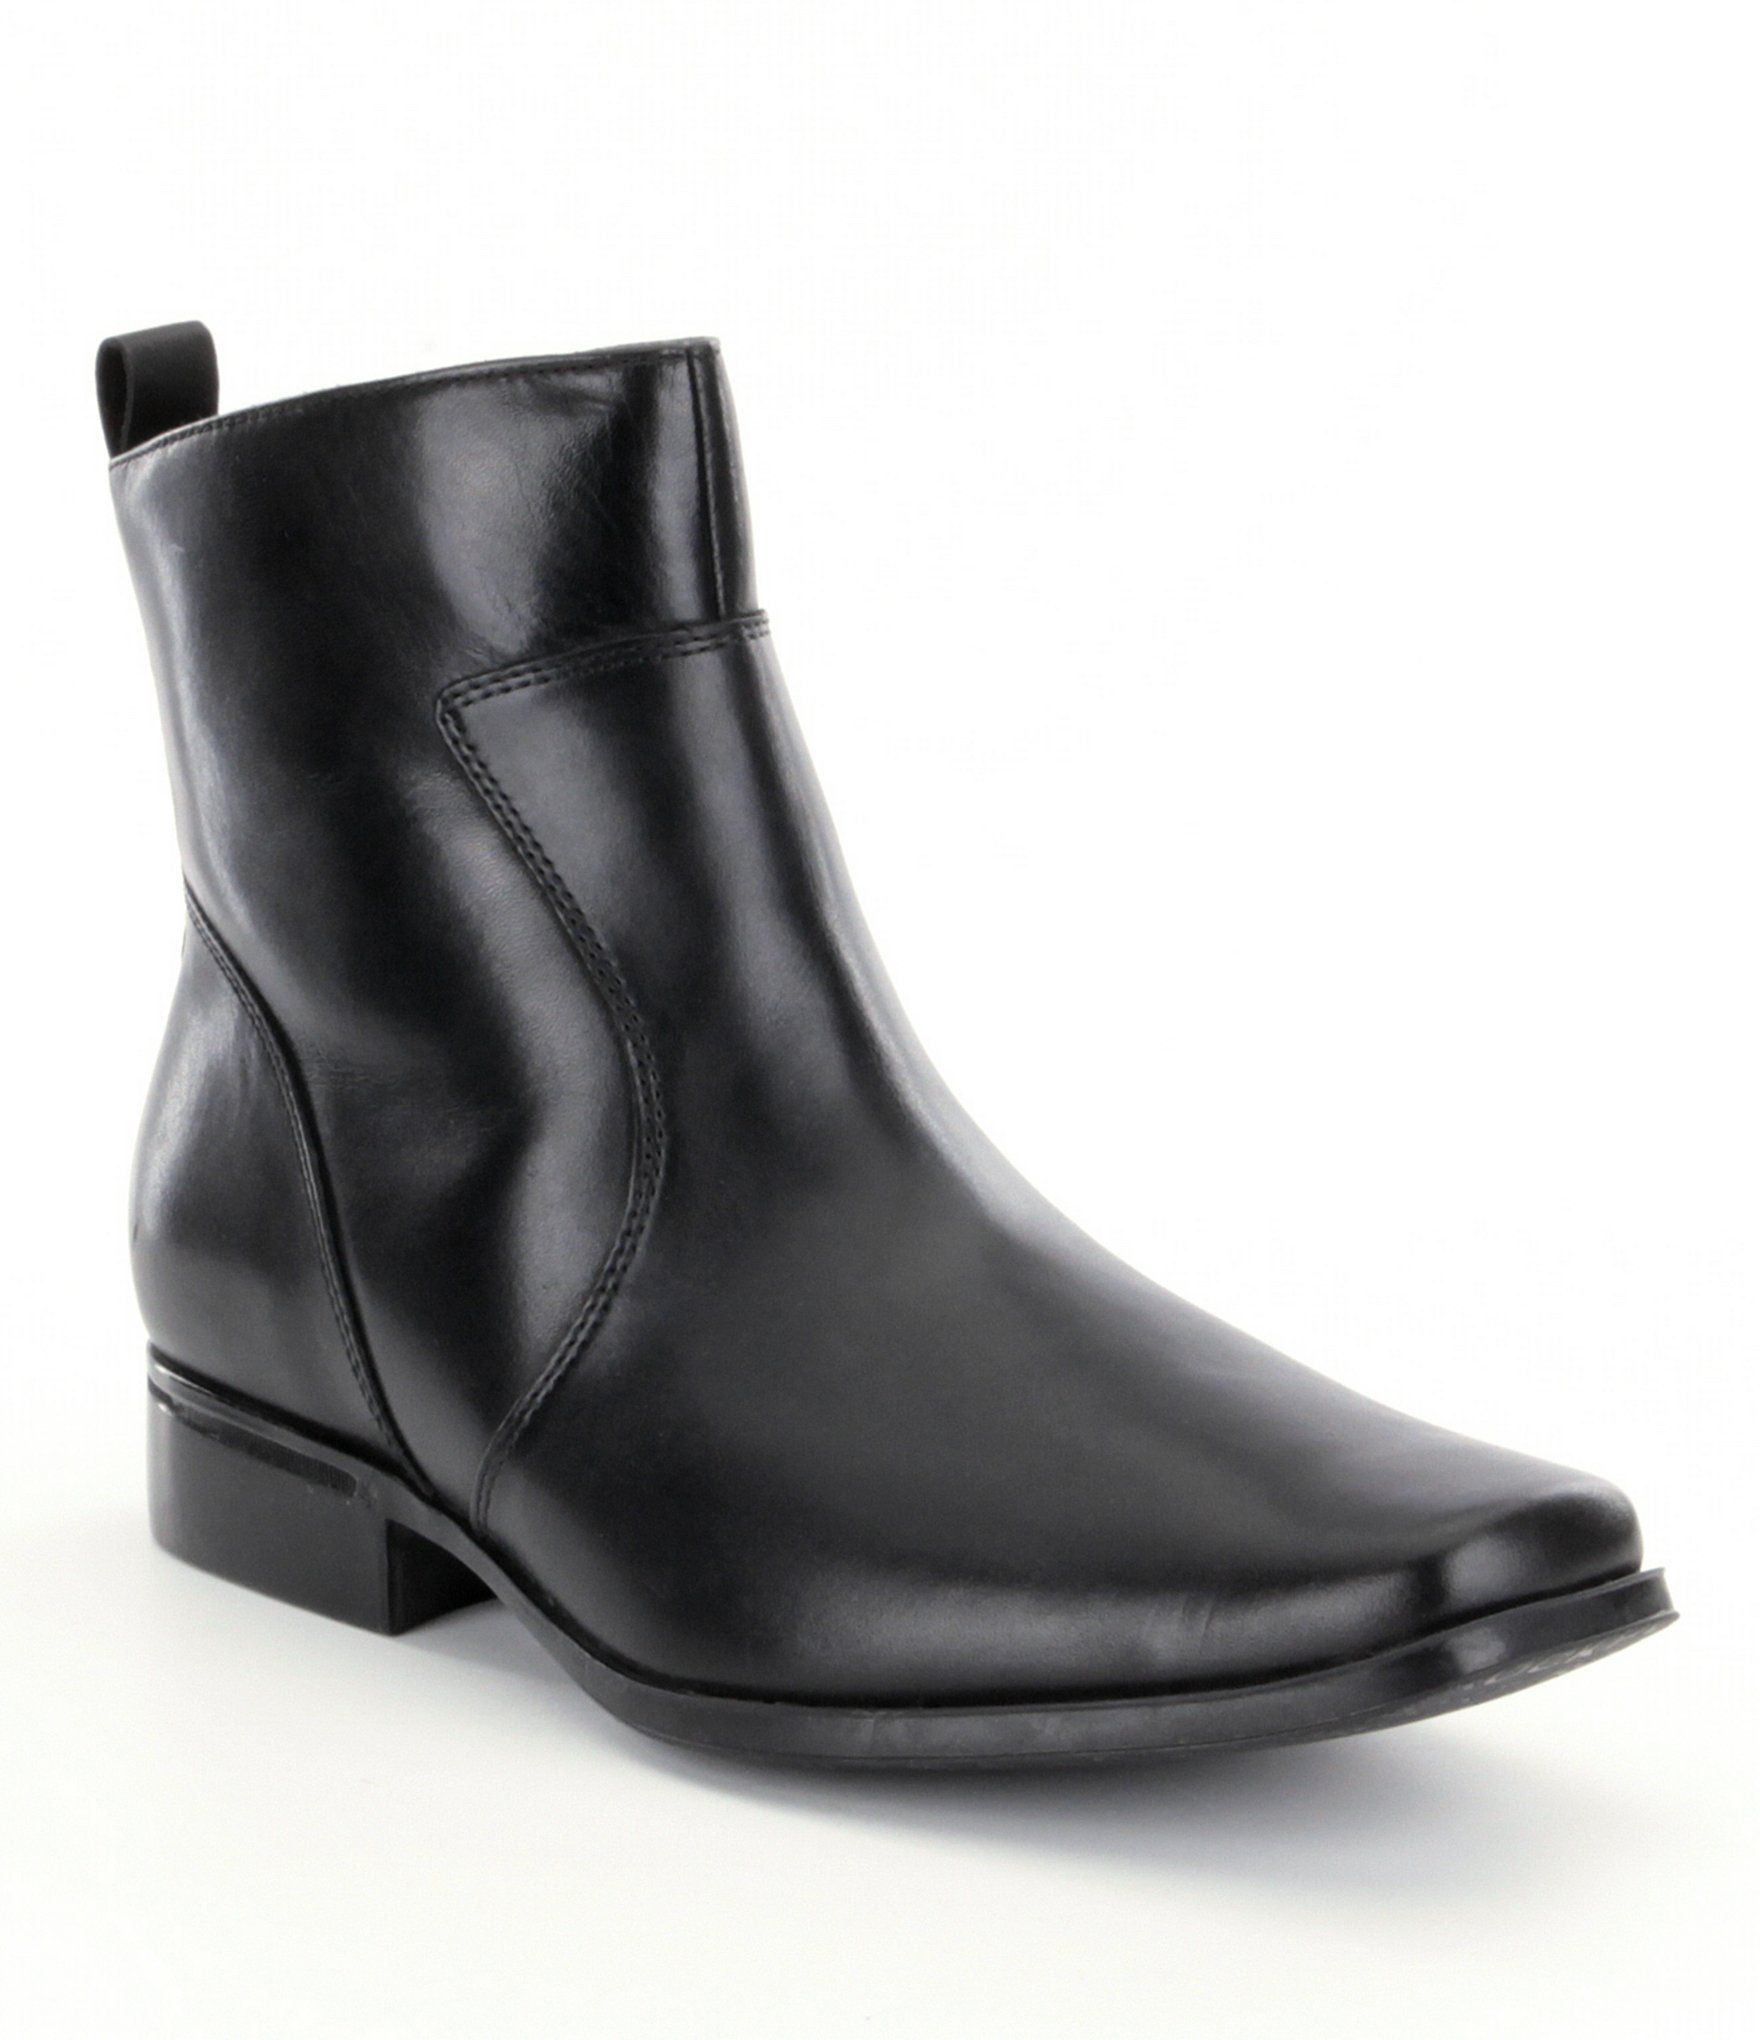 mens dress boots menu0027s dress boots | dillards mskcpbm